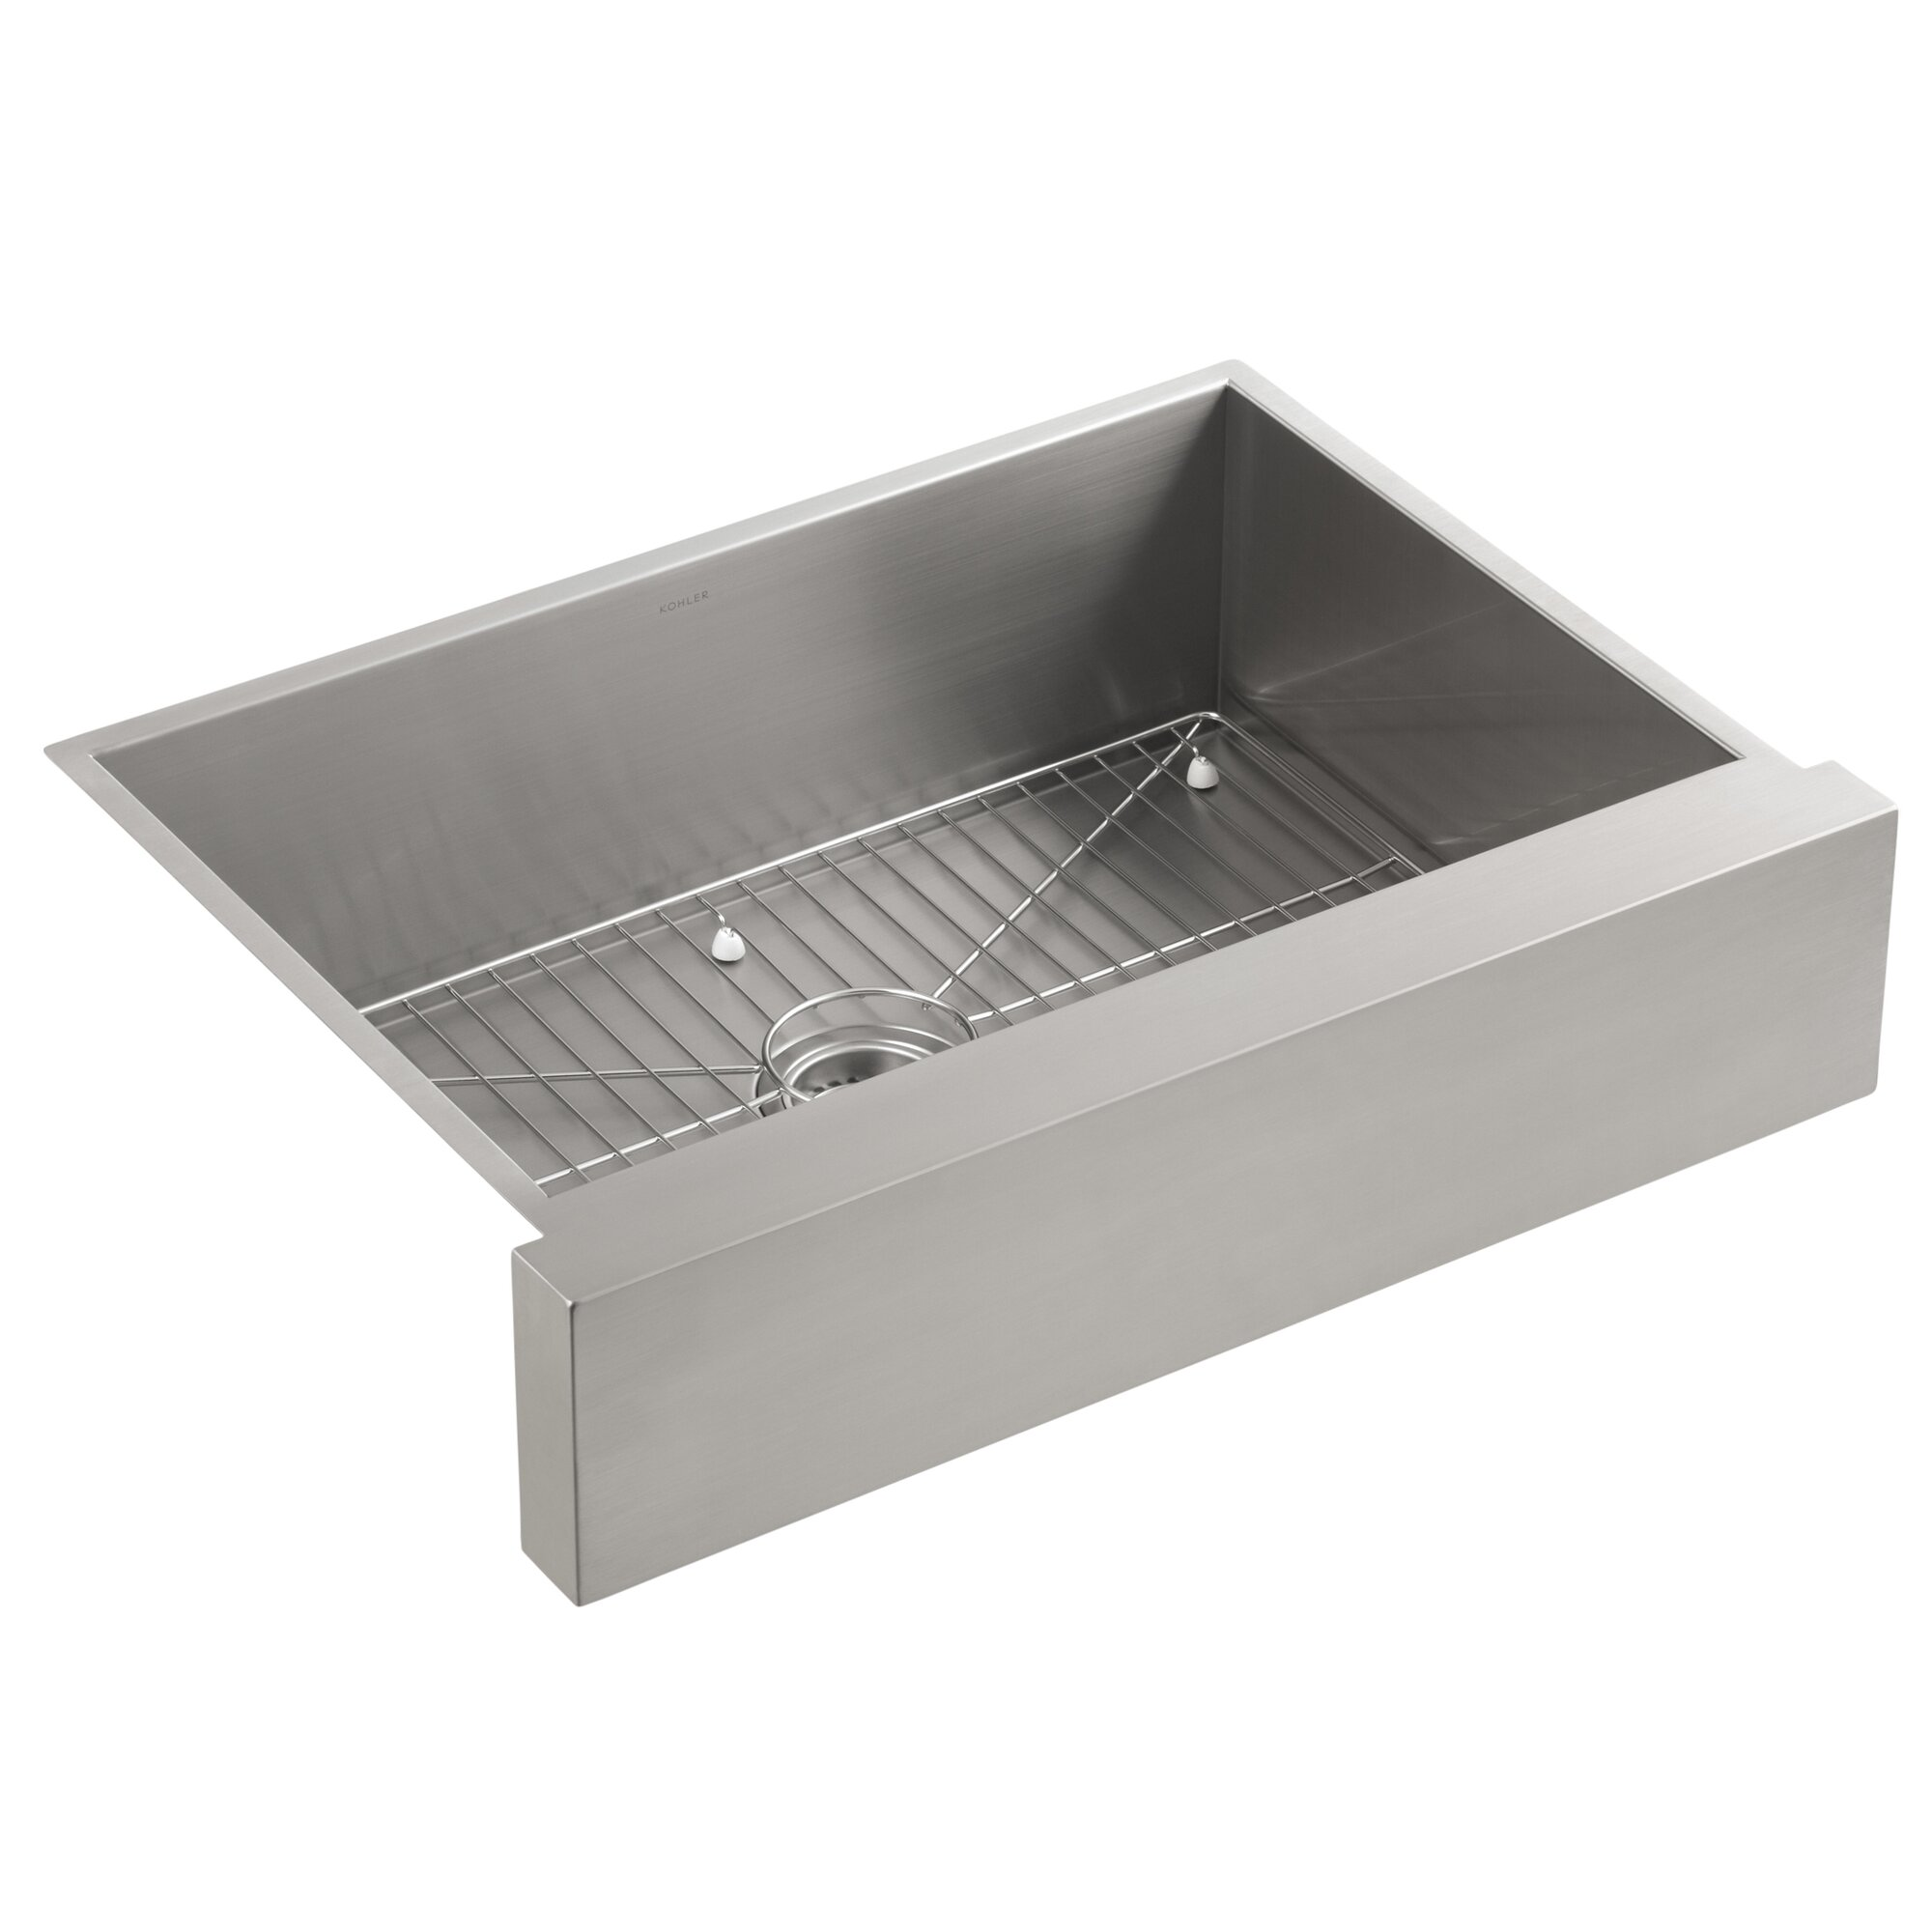 vault under mount single bowl kitchen sink stainless steel with shortened apron - Bowl Kitchen Sink